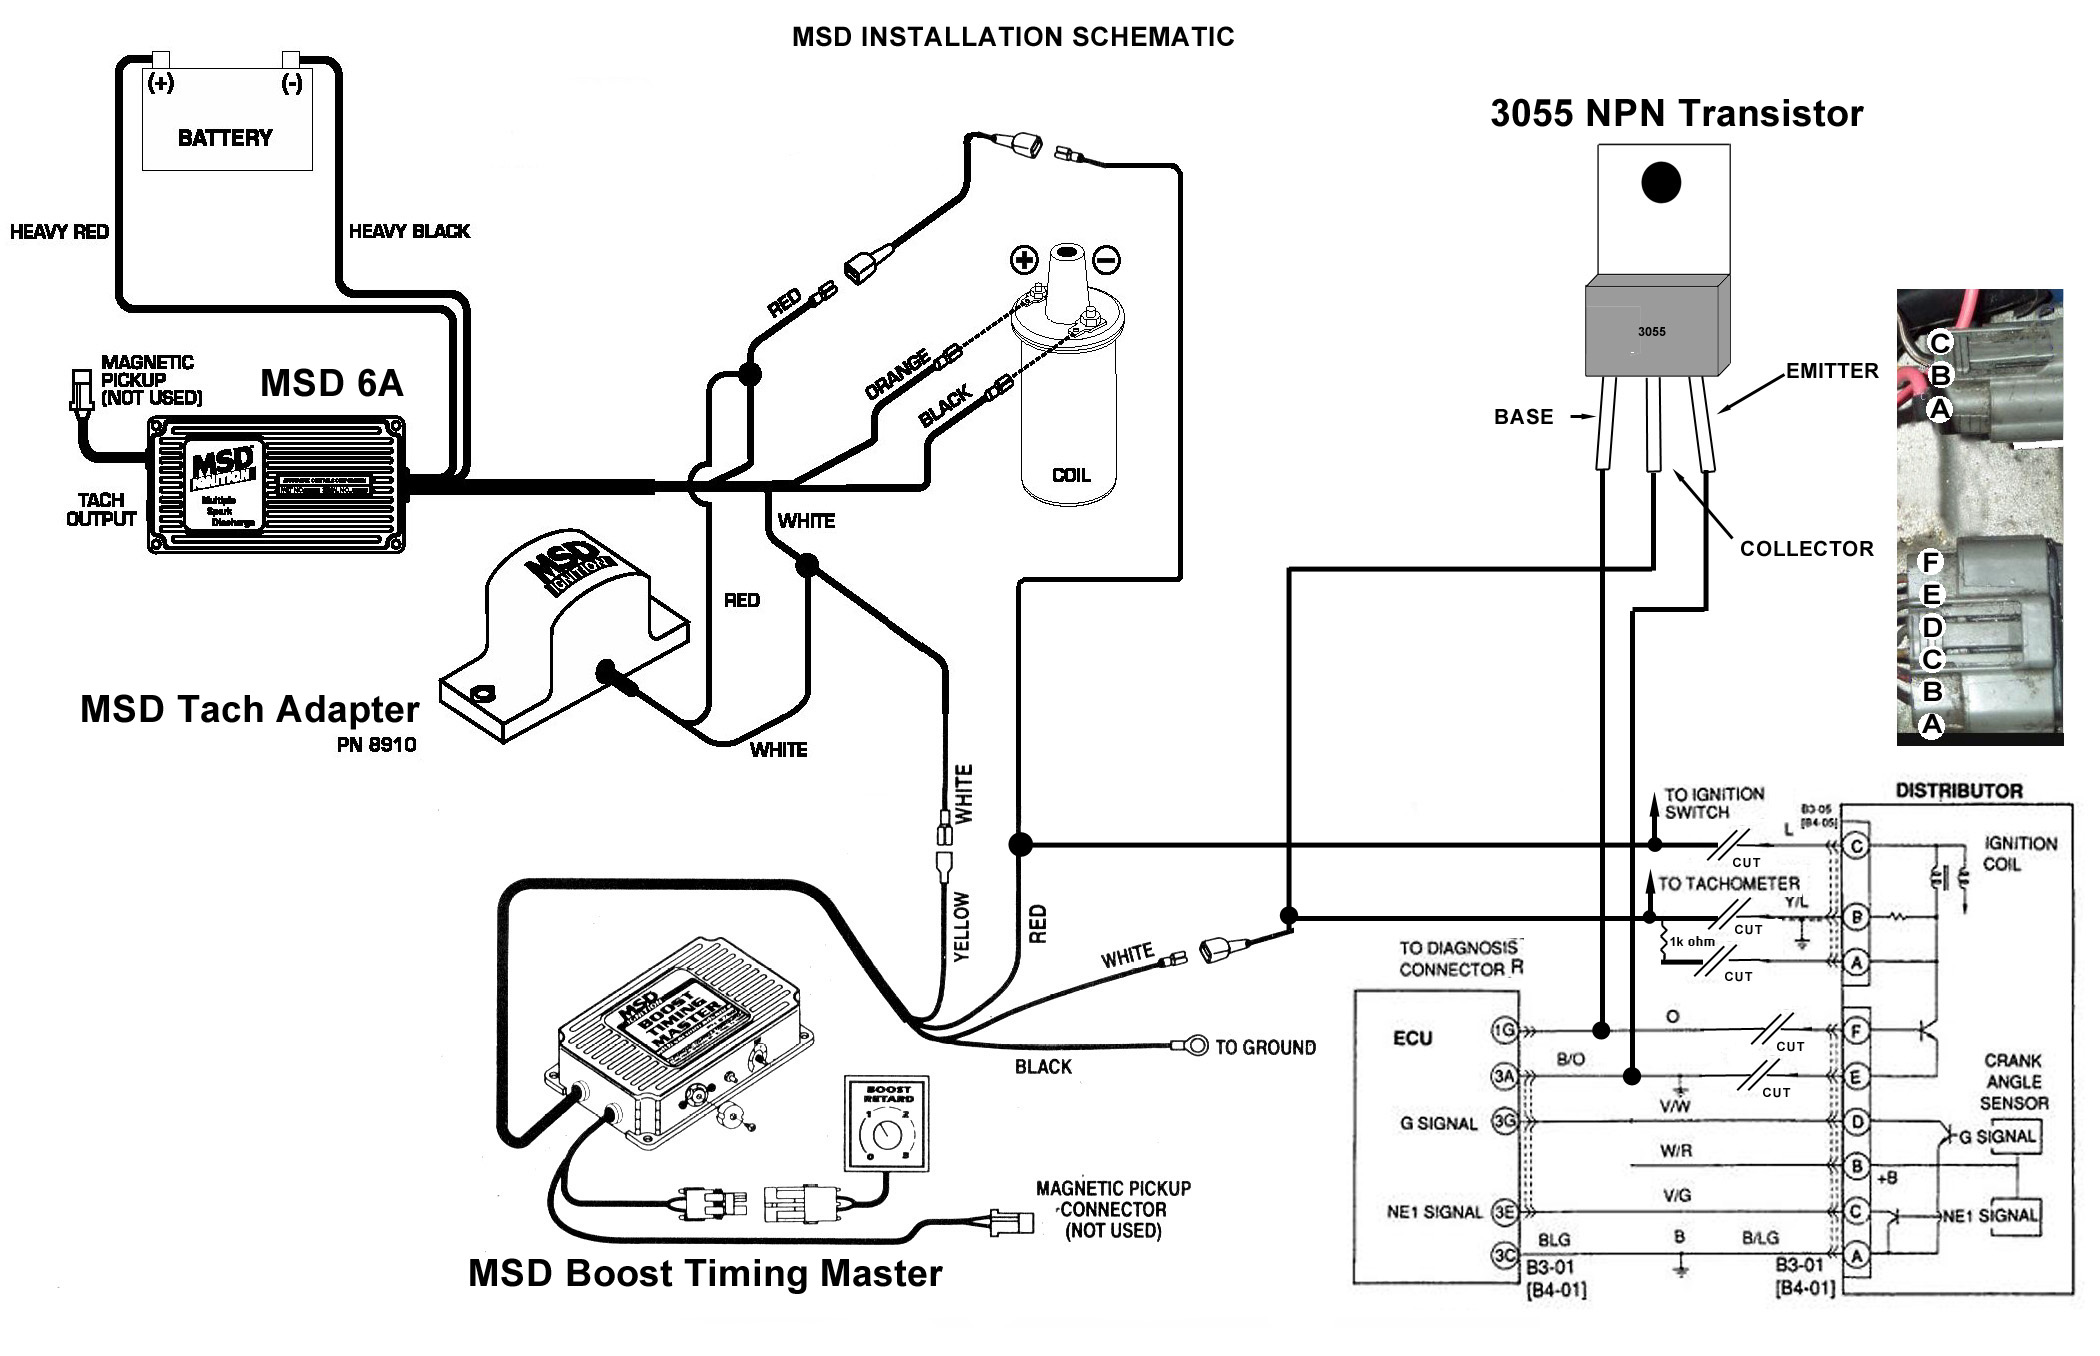 msd_complete msd wiring diagram mazda mx 6 forum msd 6ls wiring diagram at crackthecode.co